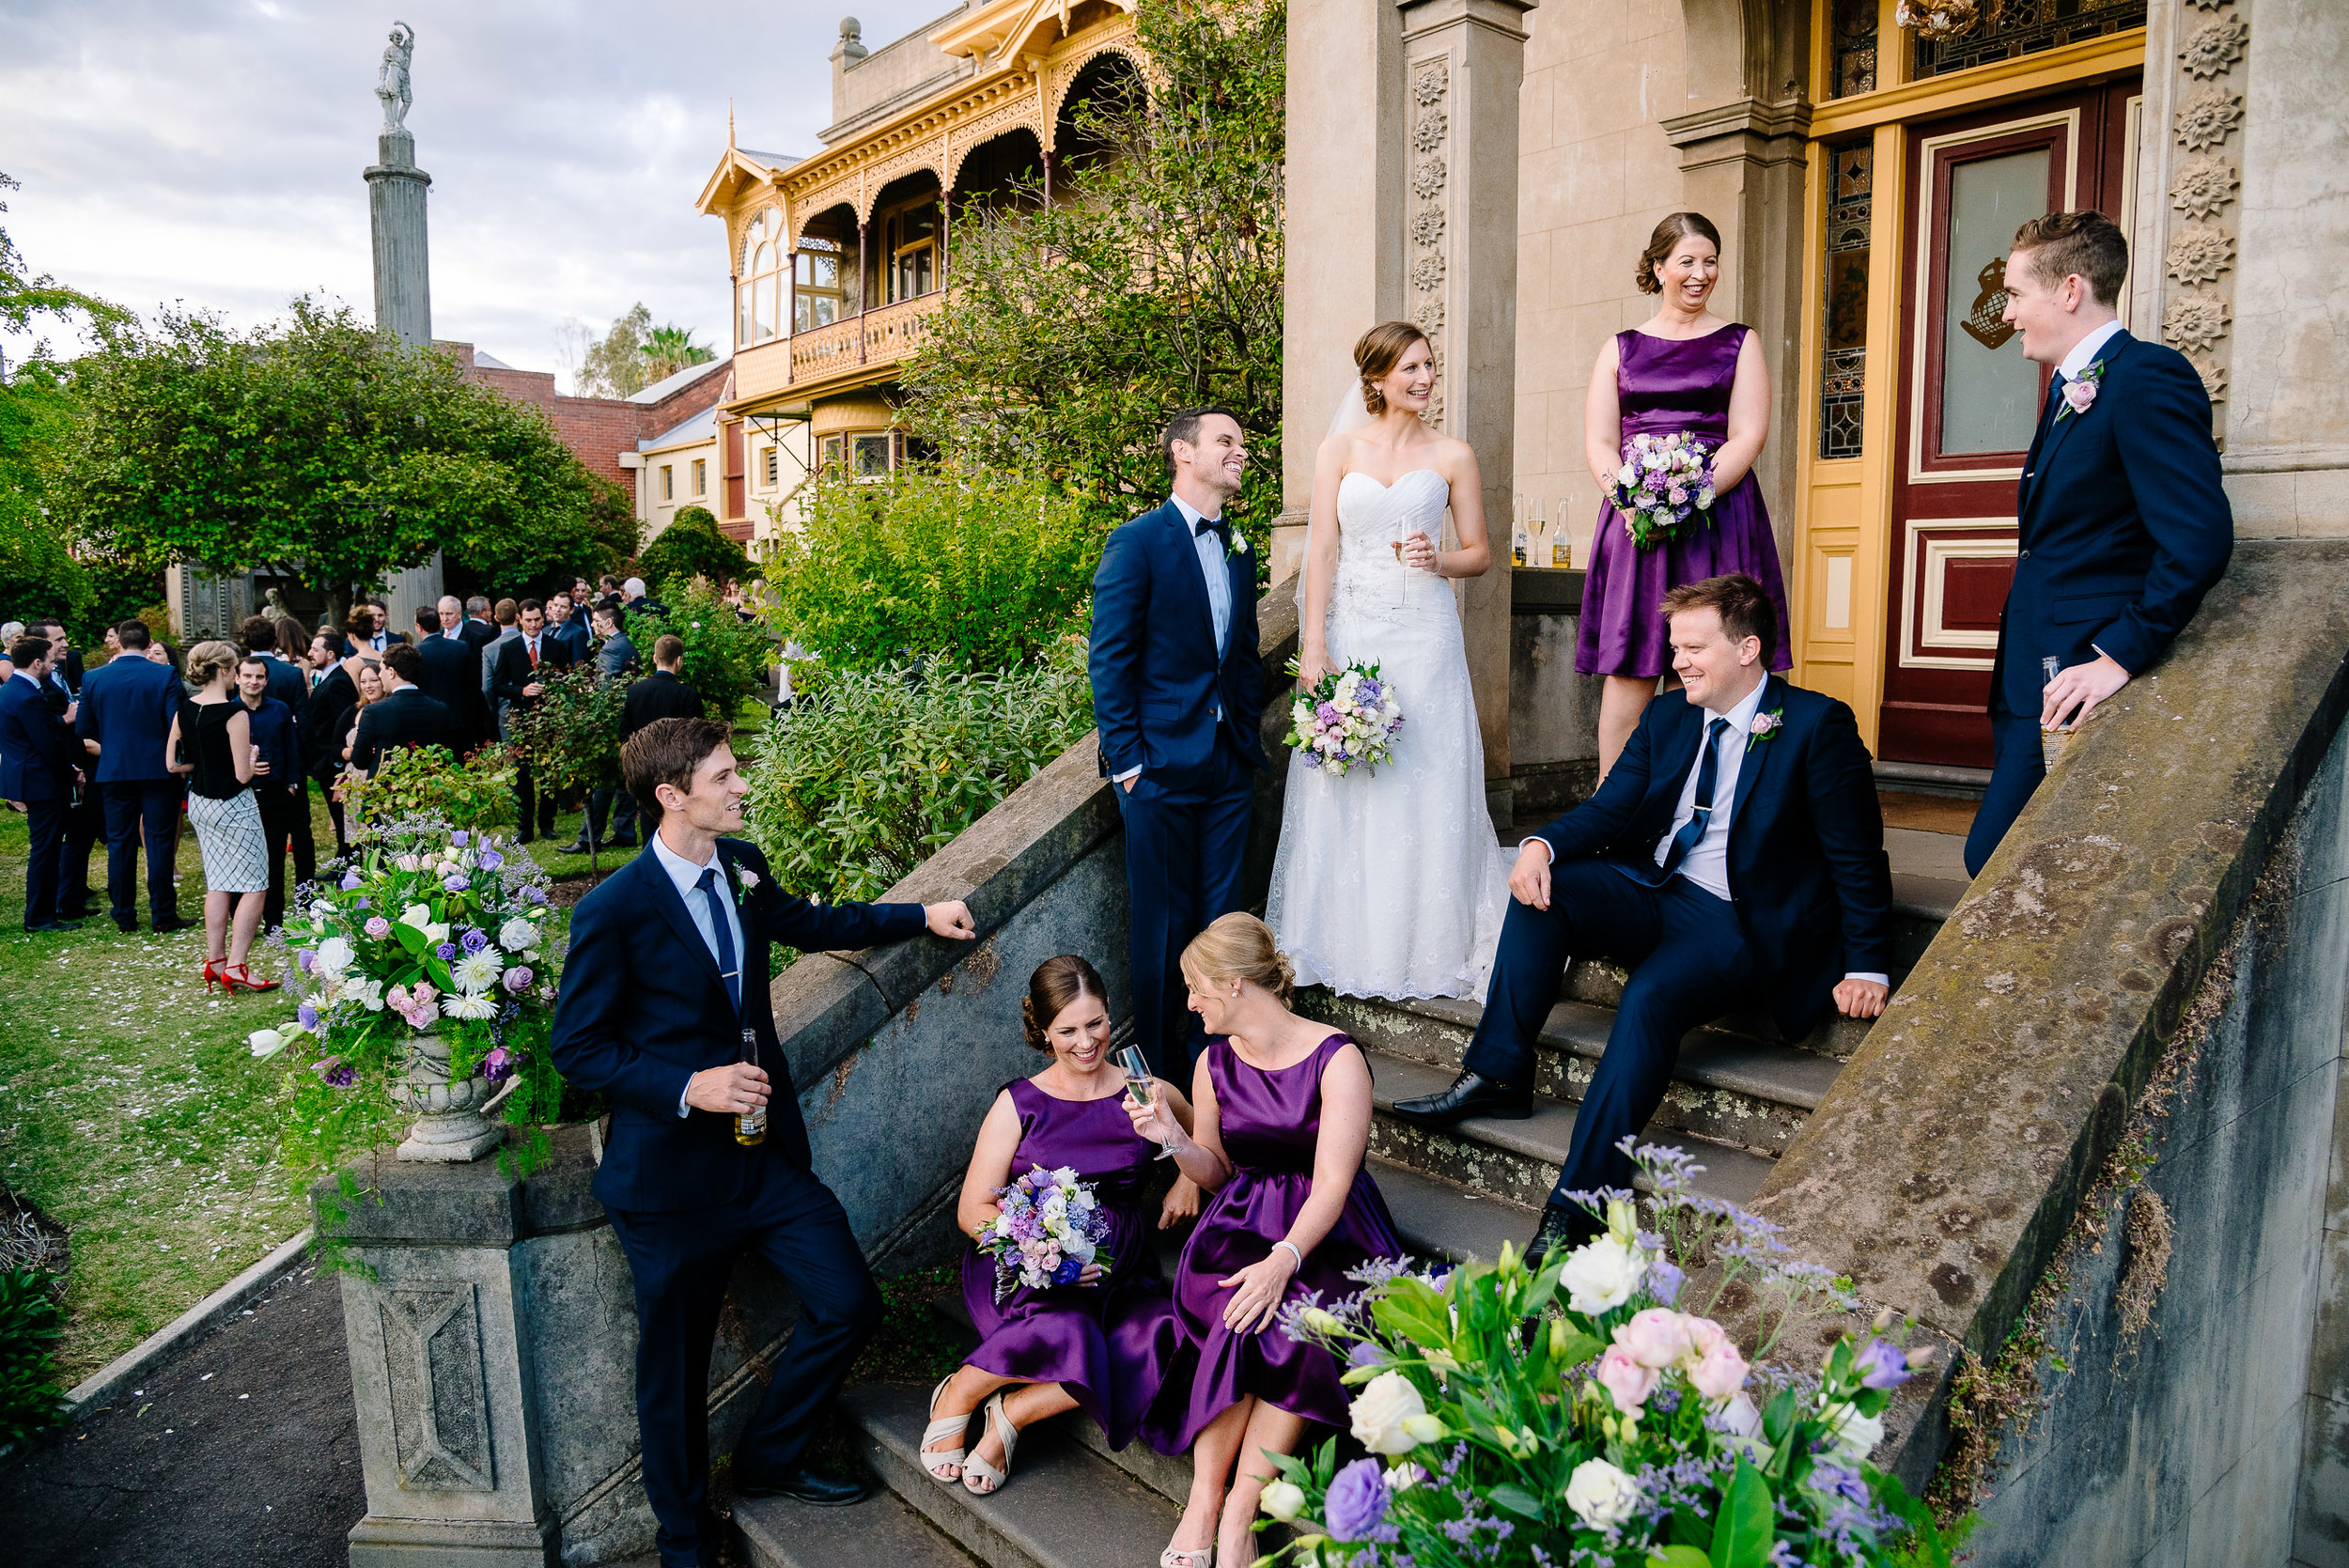 Wedding Party on the steps of Fortuna Villa Bendigo